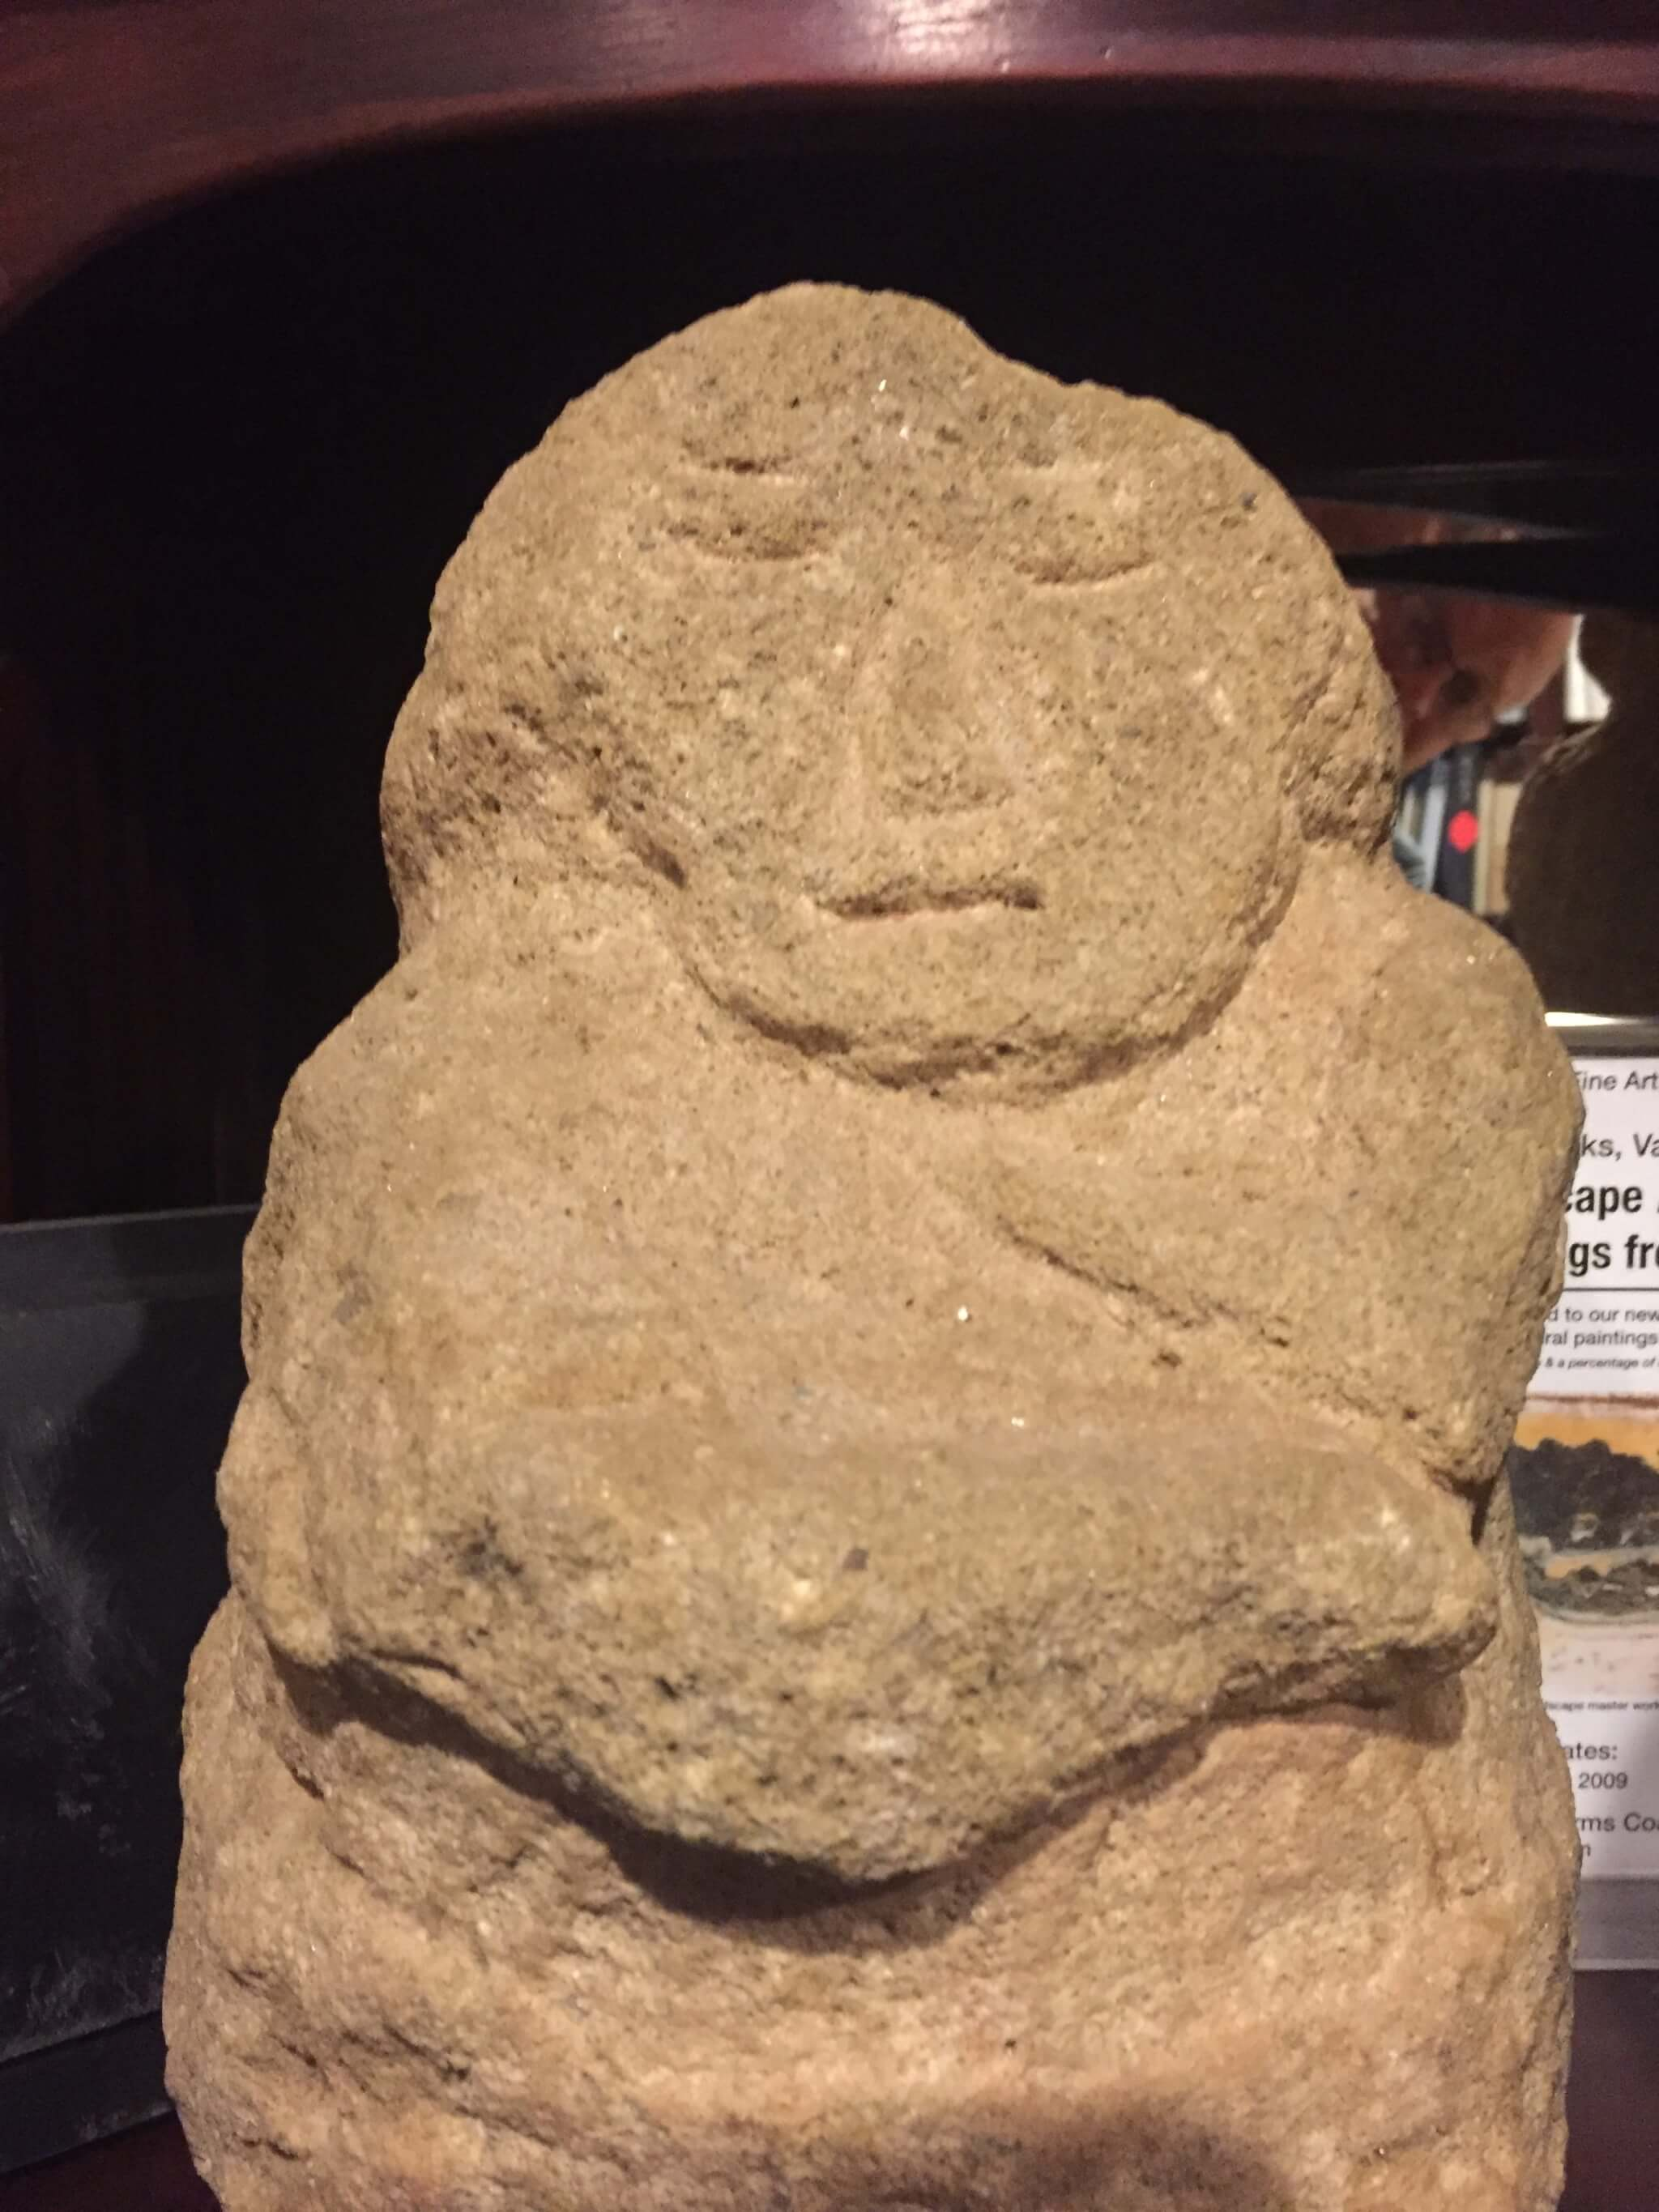 Native america an ancient hand carved stone human effigy